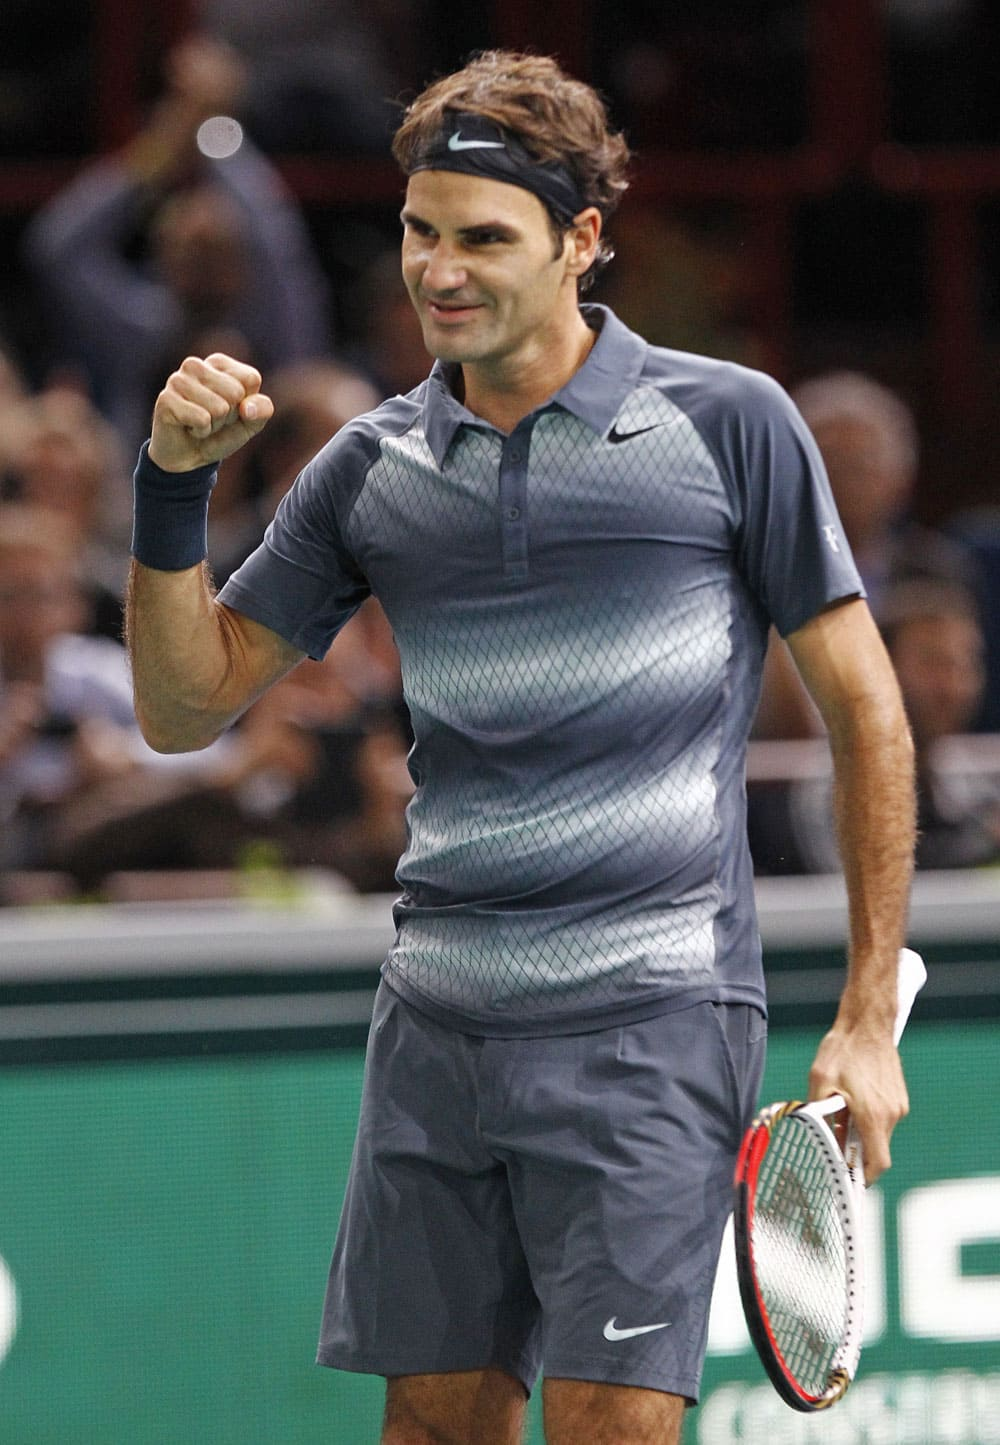 Switzerland`s Roger Federer reacts after winning his match against Argentina`s Juan Martin Del Potro at the Paris Masters tennis, in the Paris Bercy stadium.